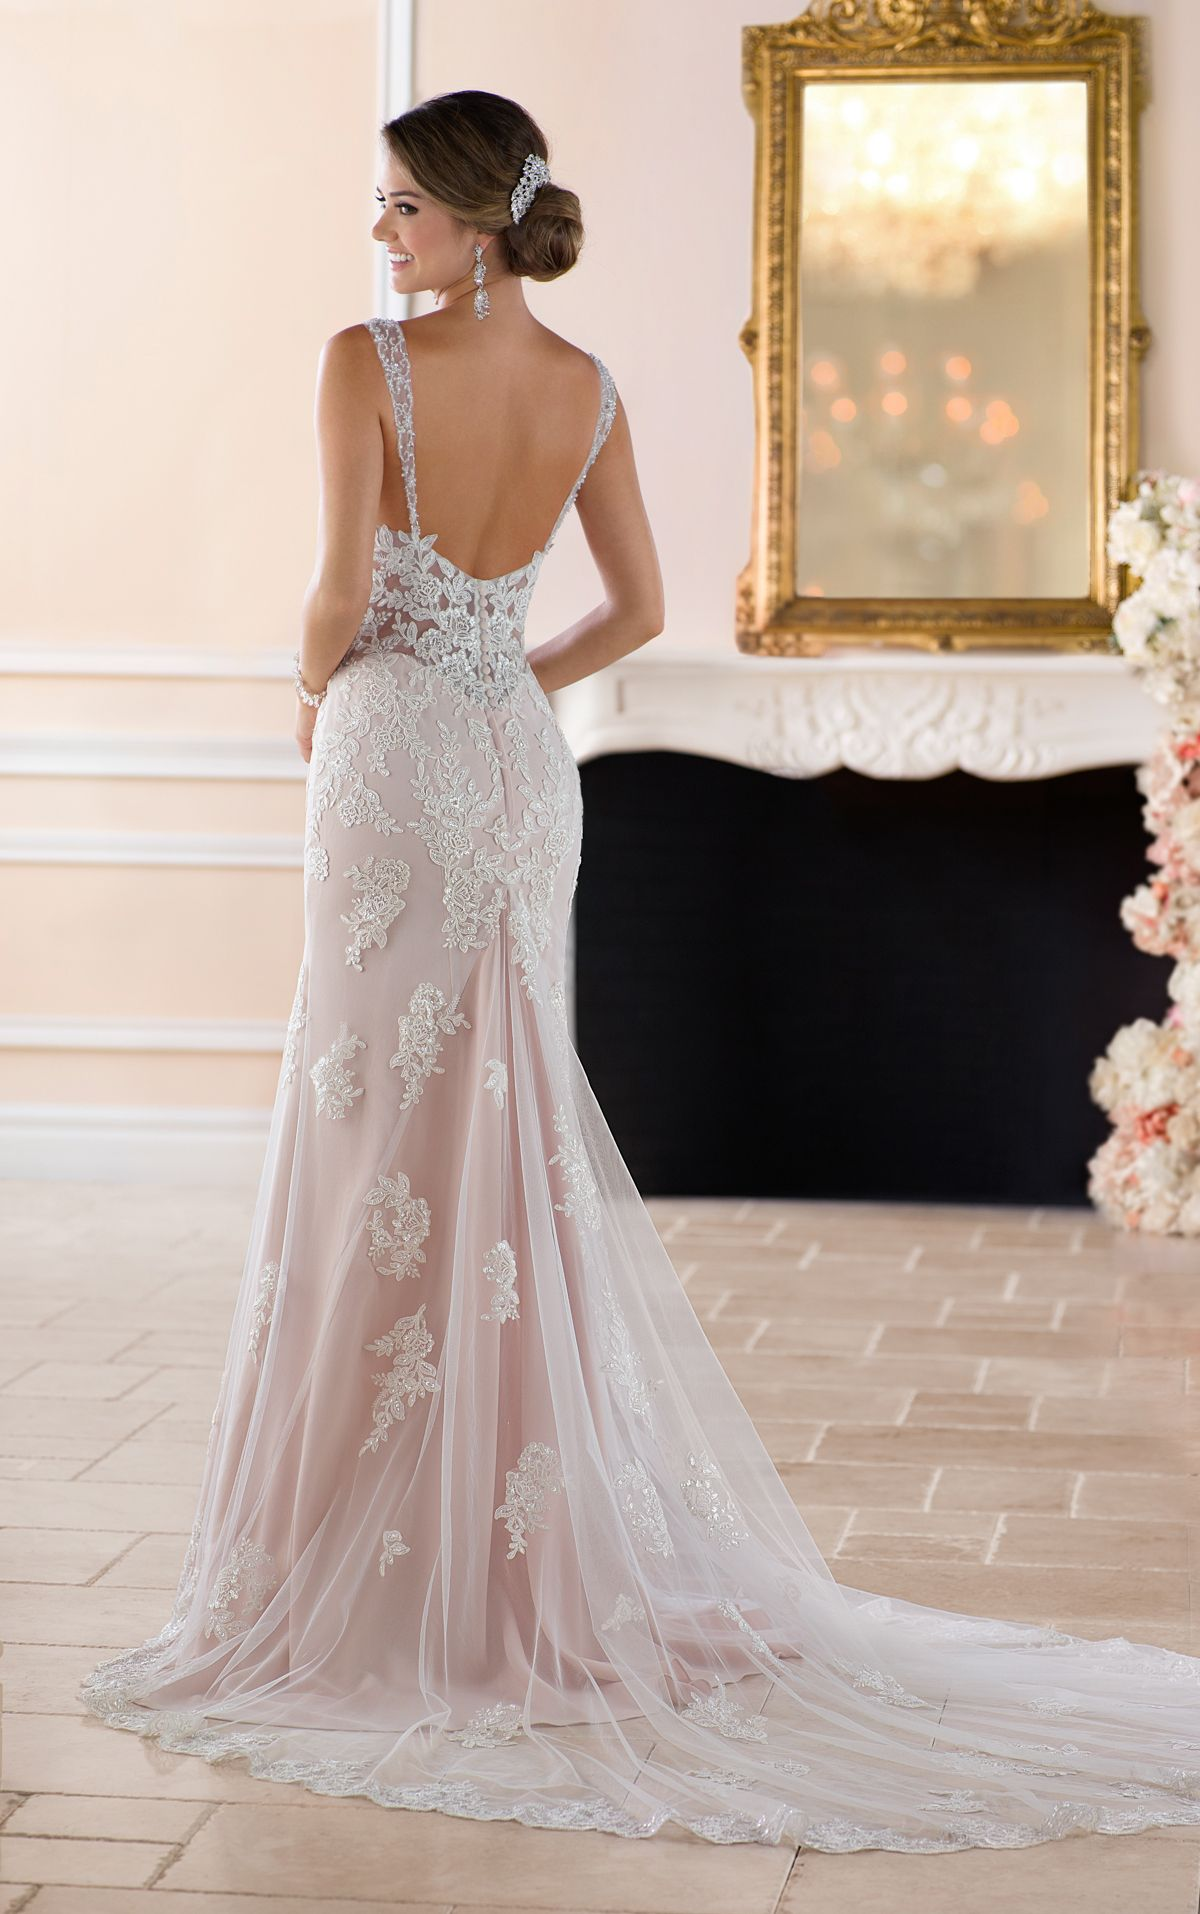 Old Hollywood Glamour Wedding Dress with Long Train in ...